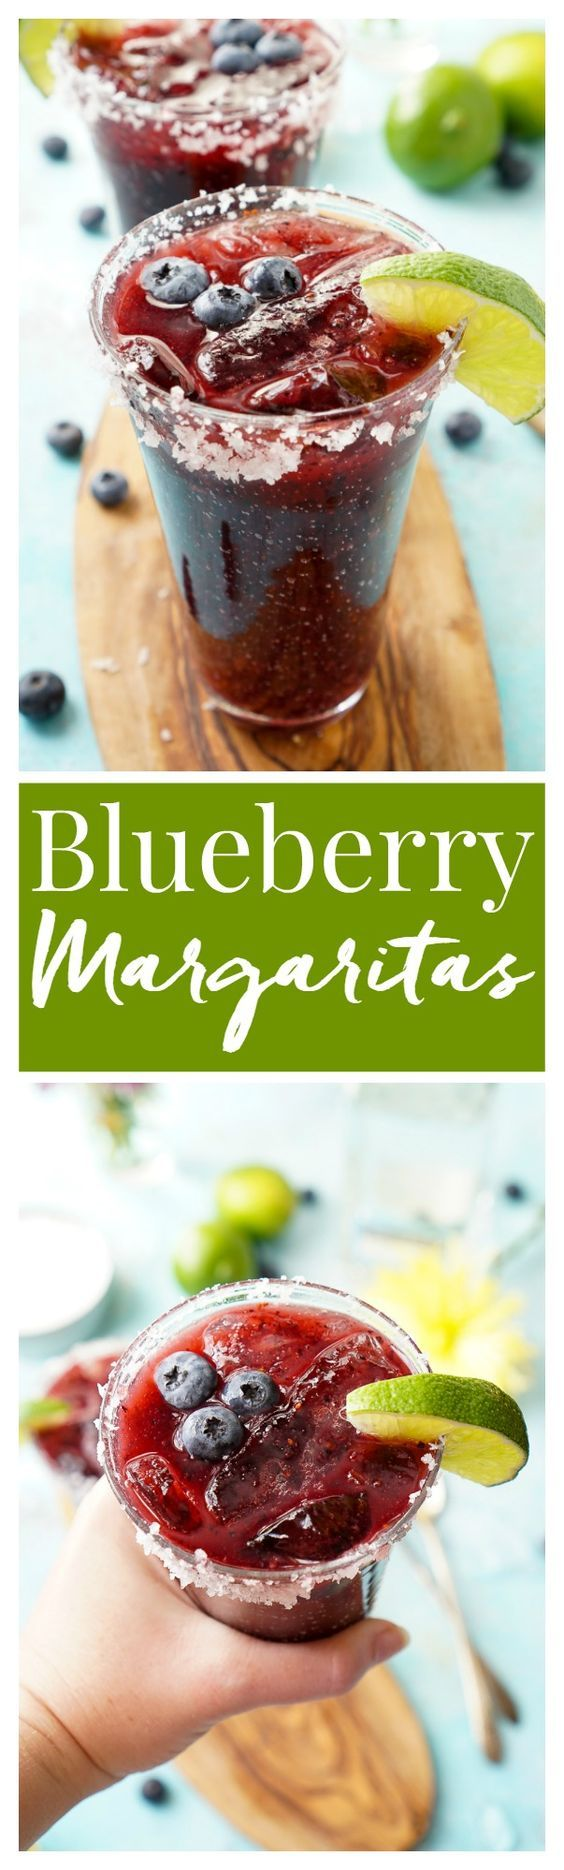 This Fresh Blueberry Margarita is made with ripe blueberries and Altos Tequila…